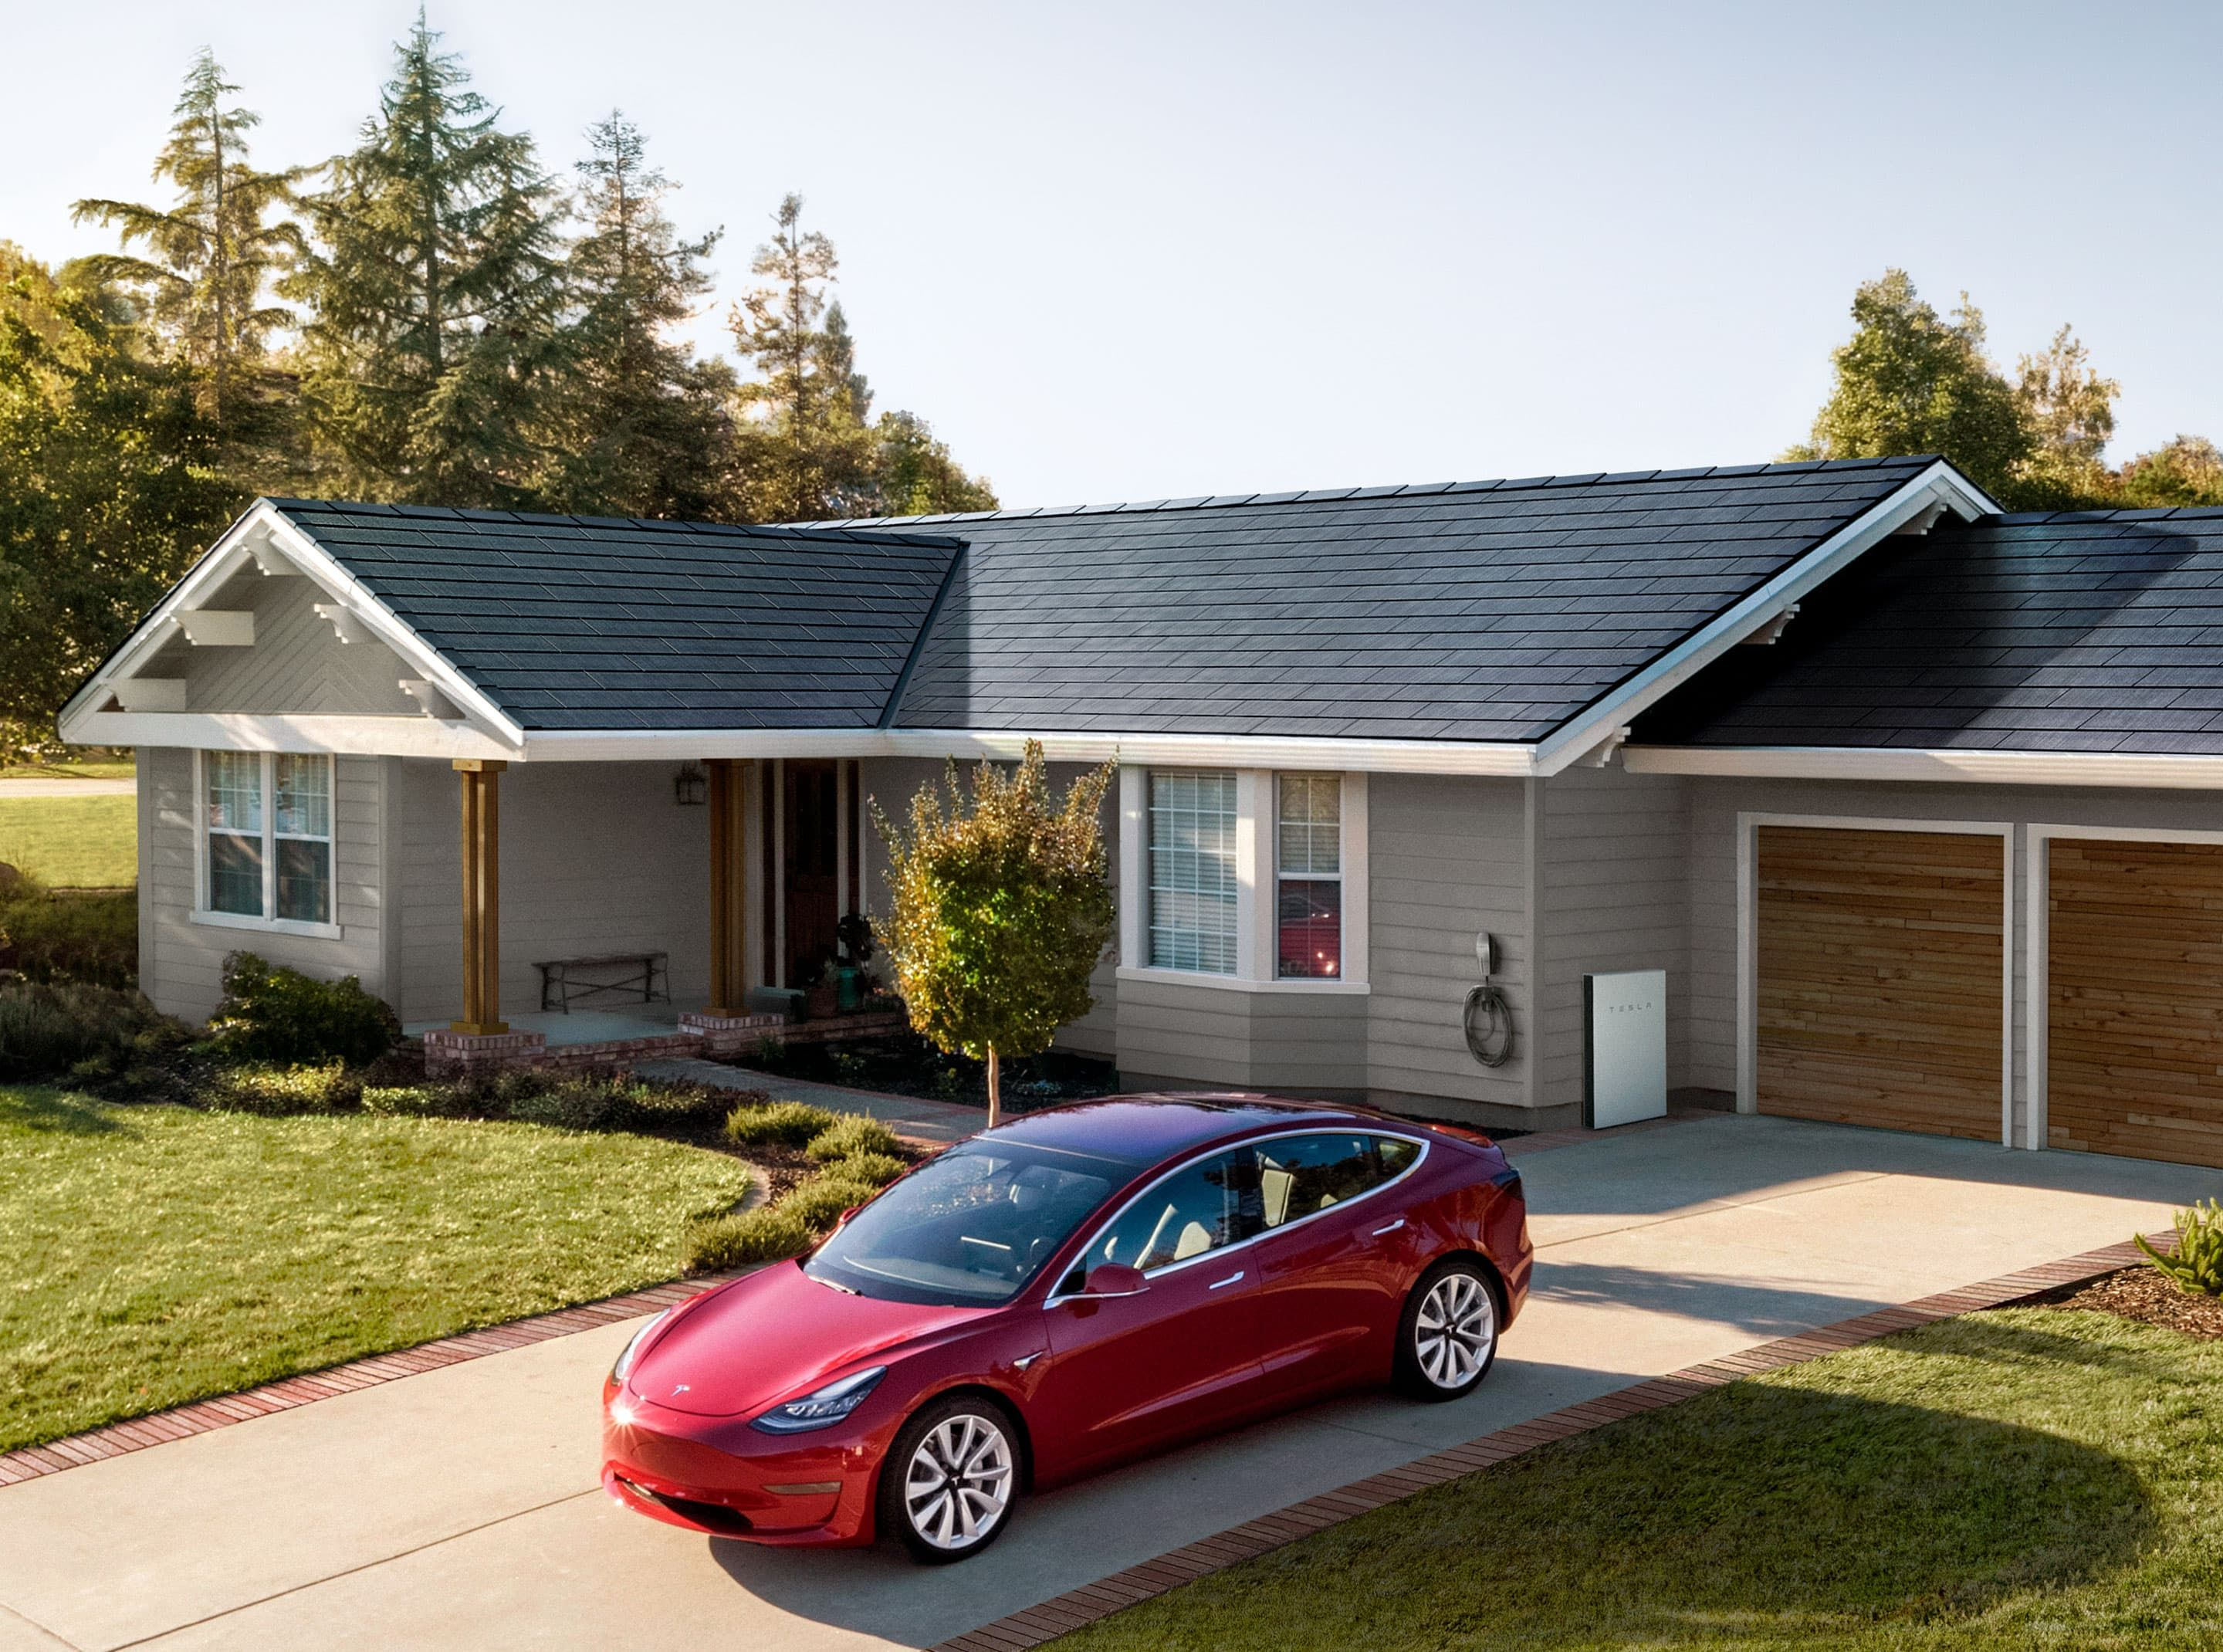 Pin By Samuel Warnick On Our House With Images Solar Roof Tiles Tesla Solar Roof Solar Panels Roof